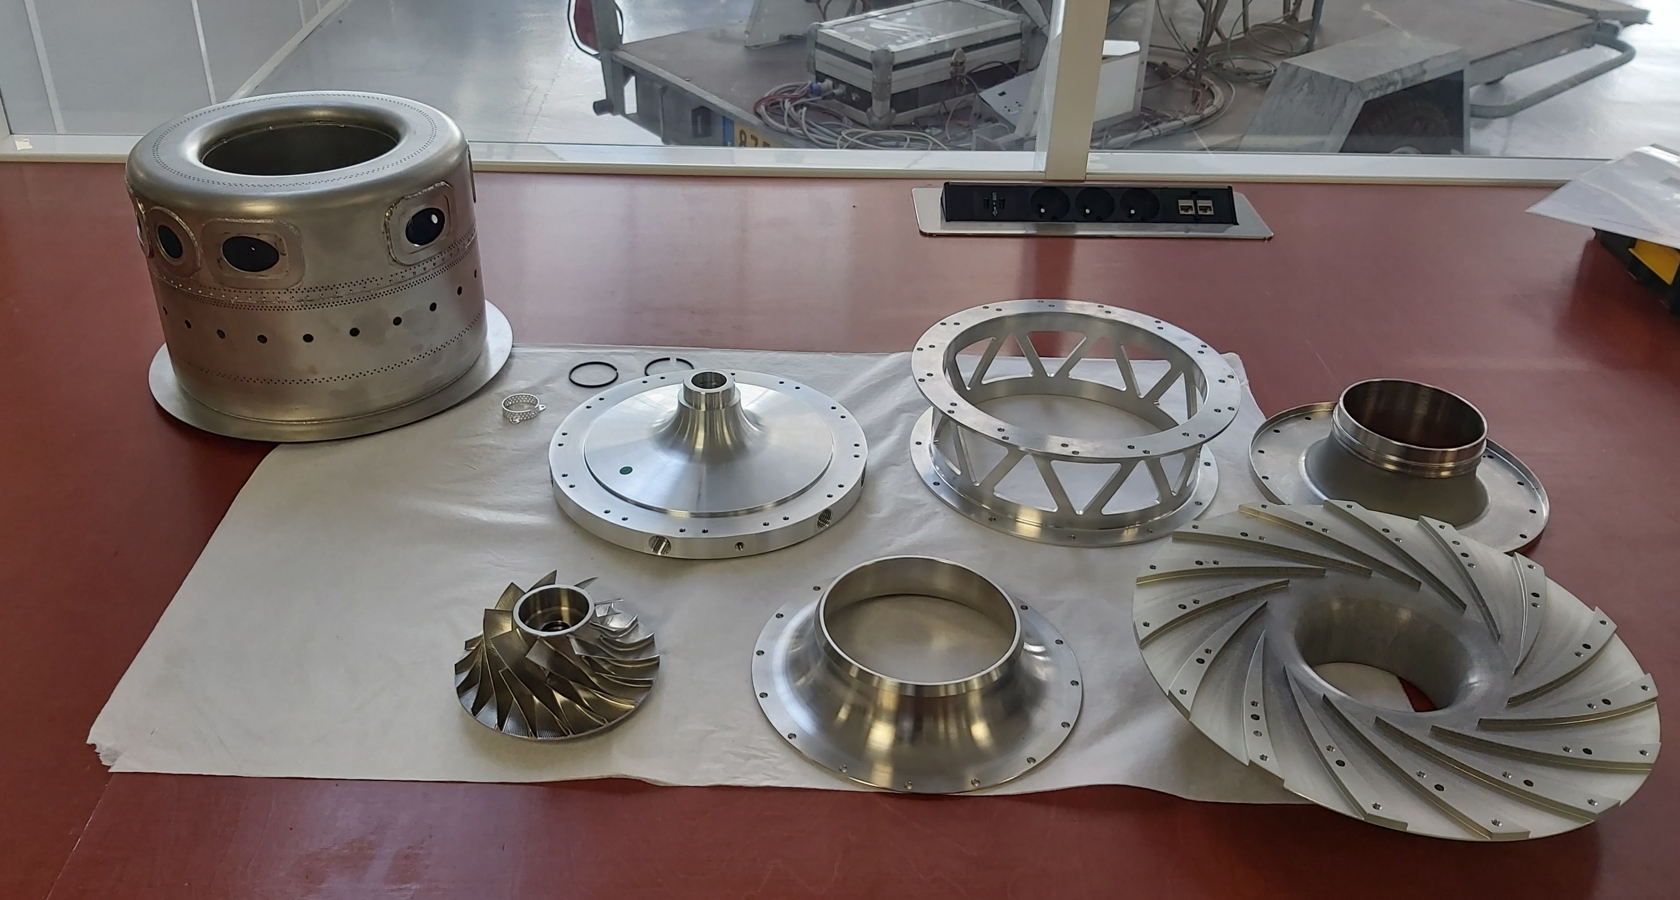 Turbotech engine components